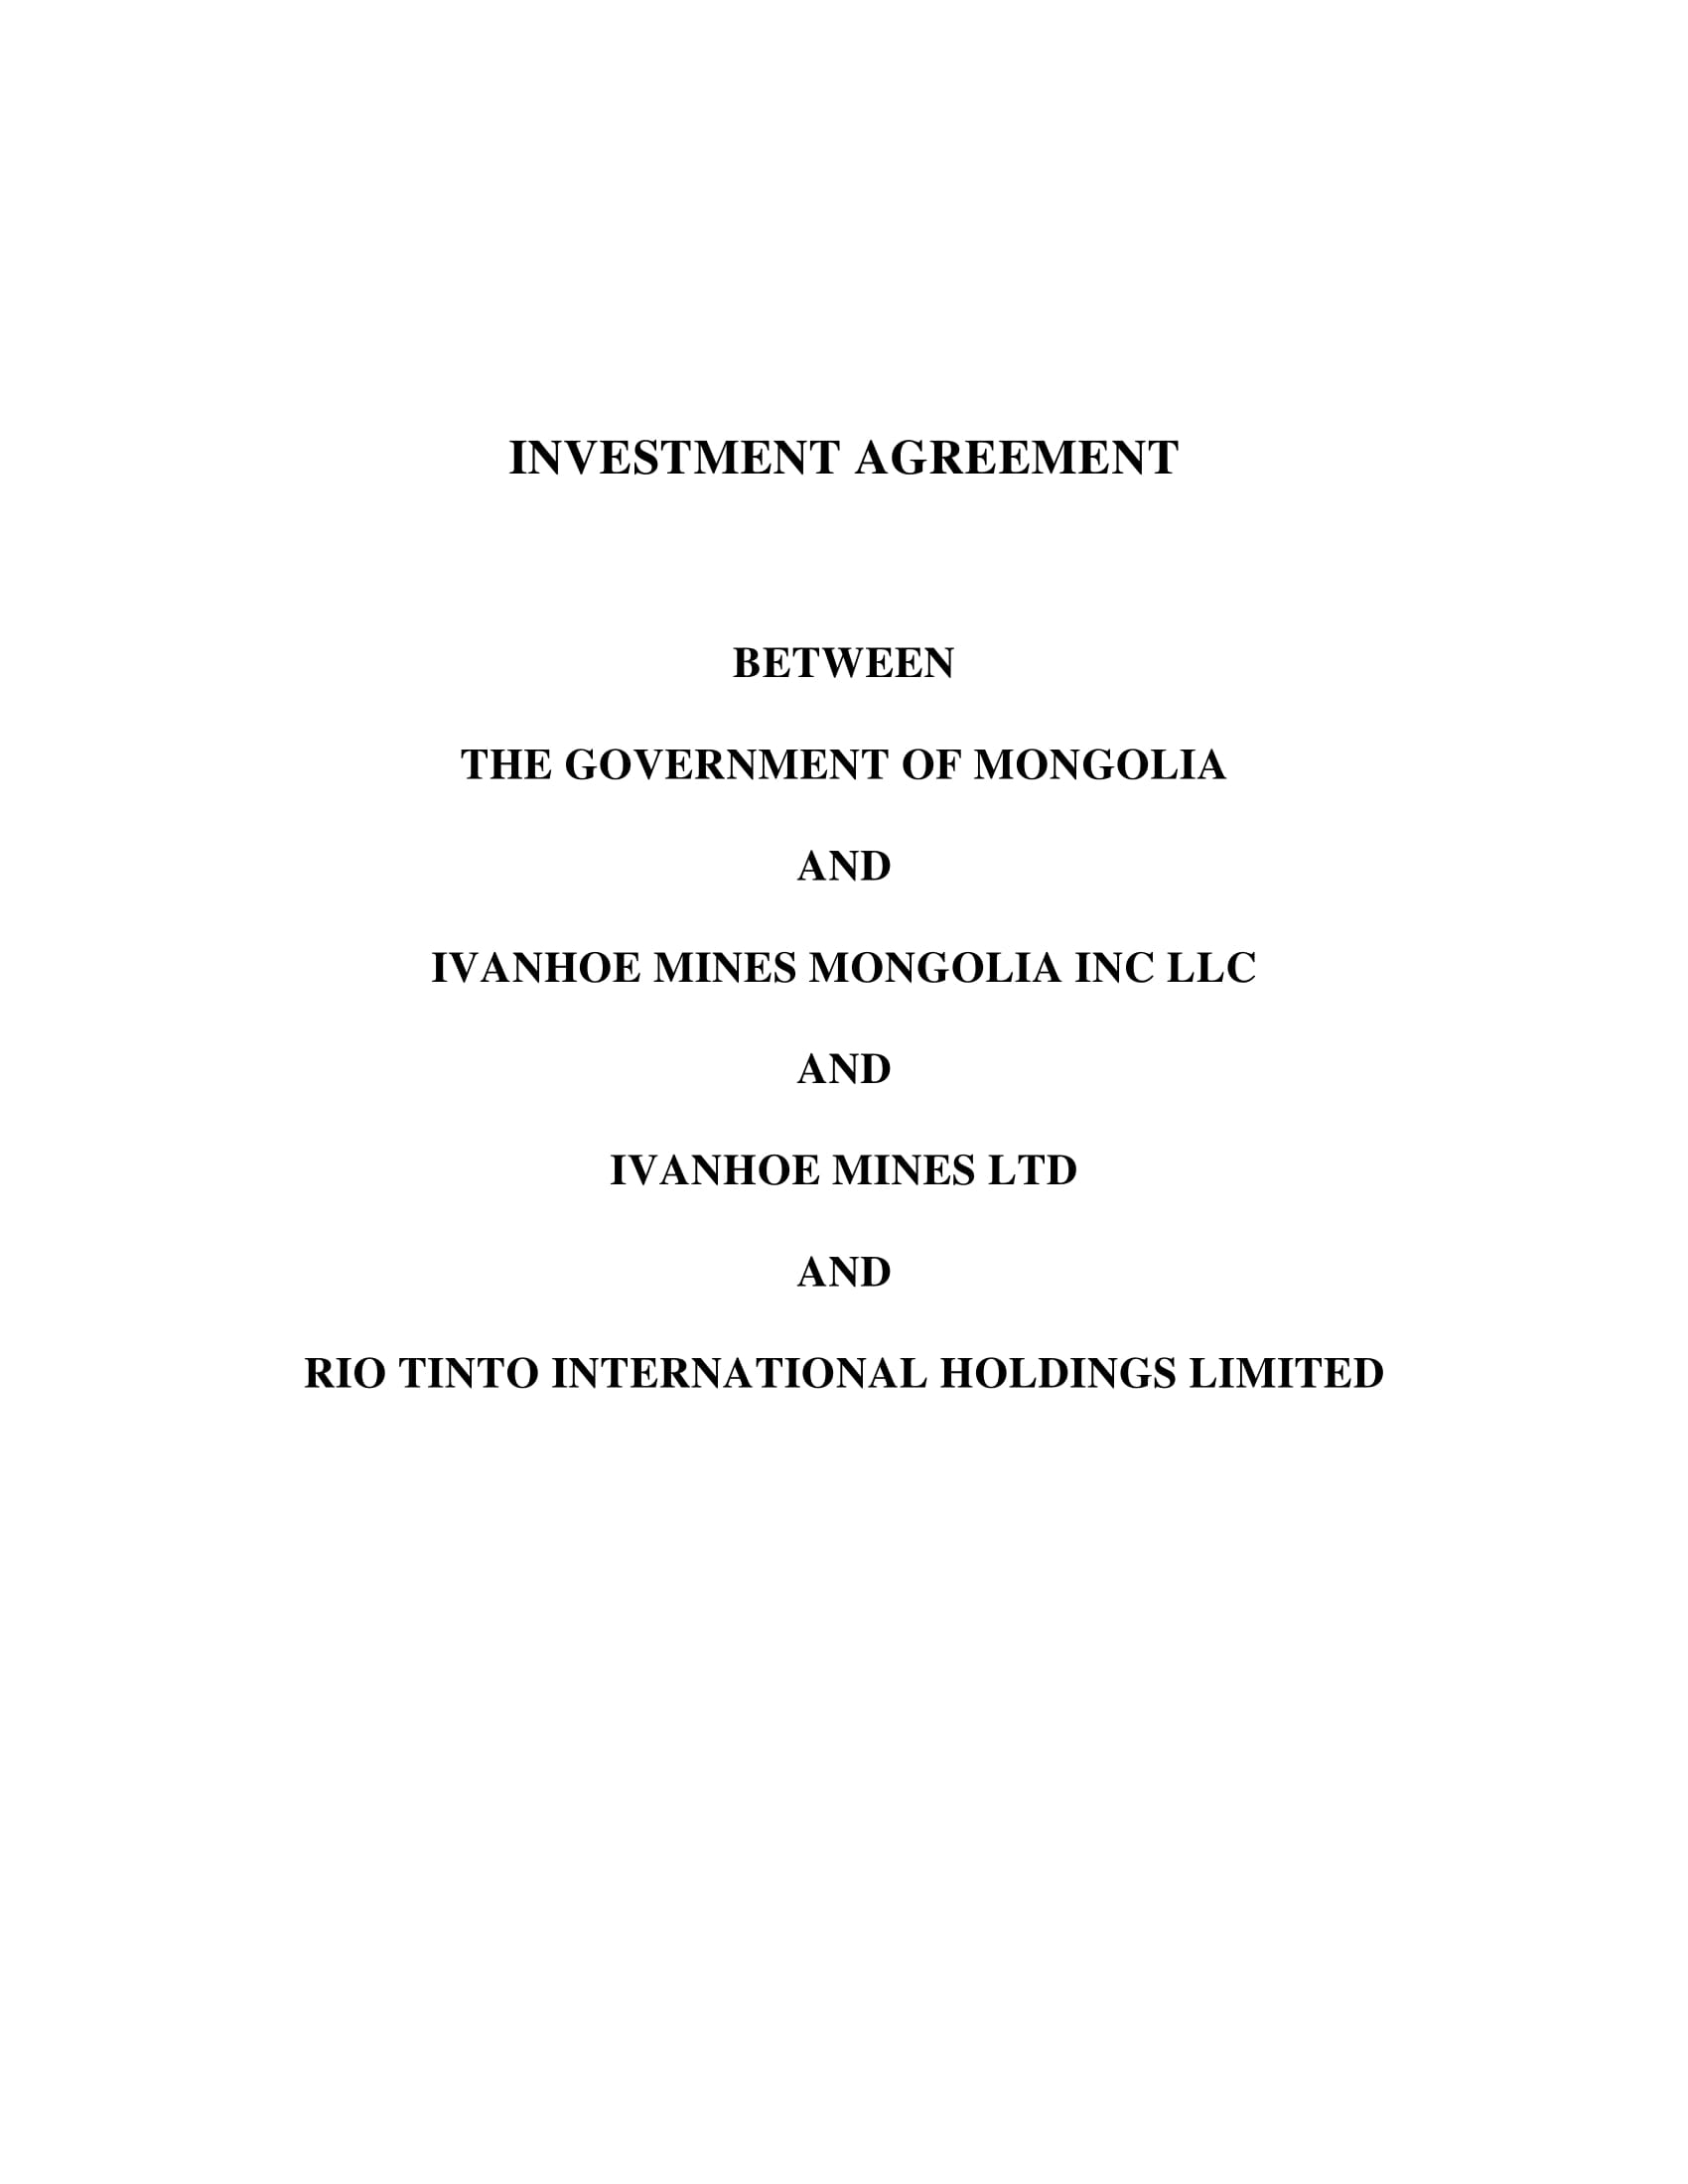 mongolia investment agreement